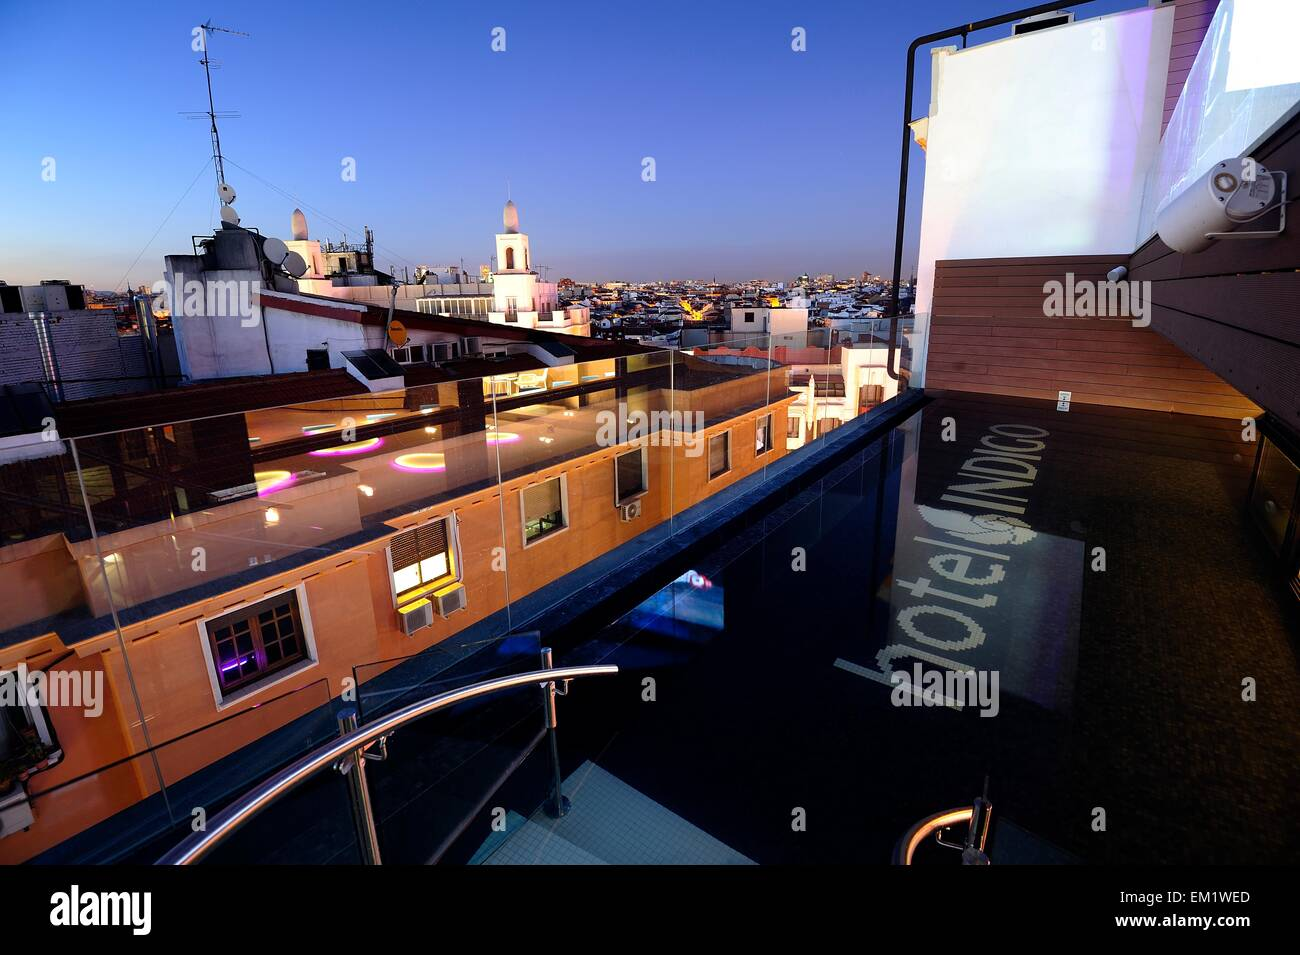 Swimming pool on the roof at Hotel Indigo - Stock Image